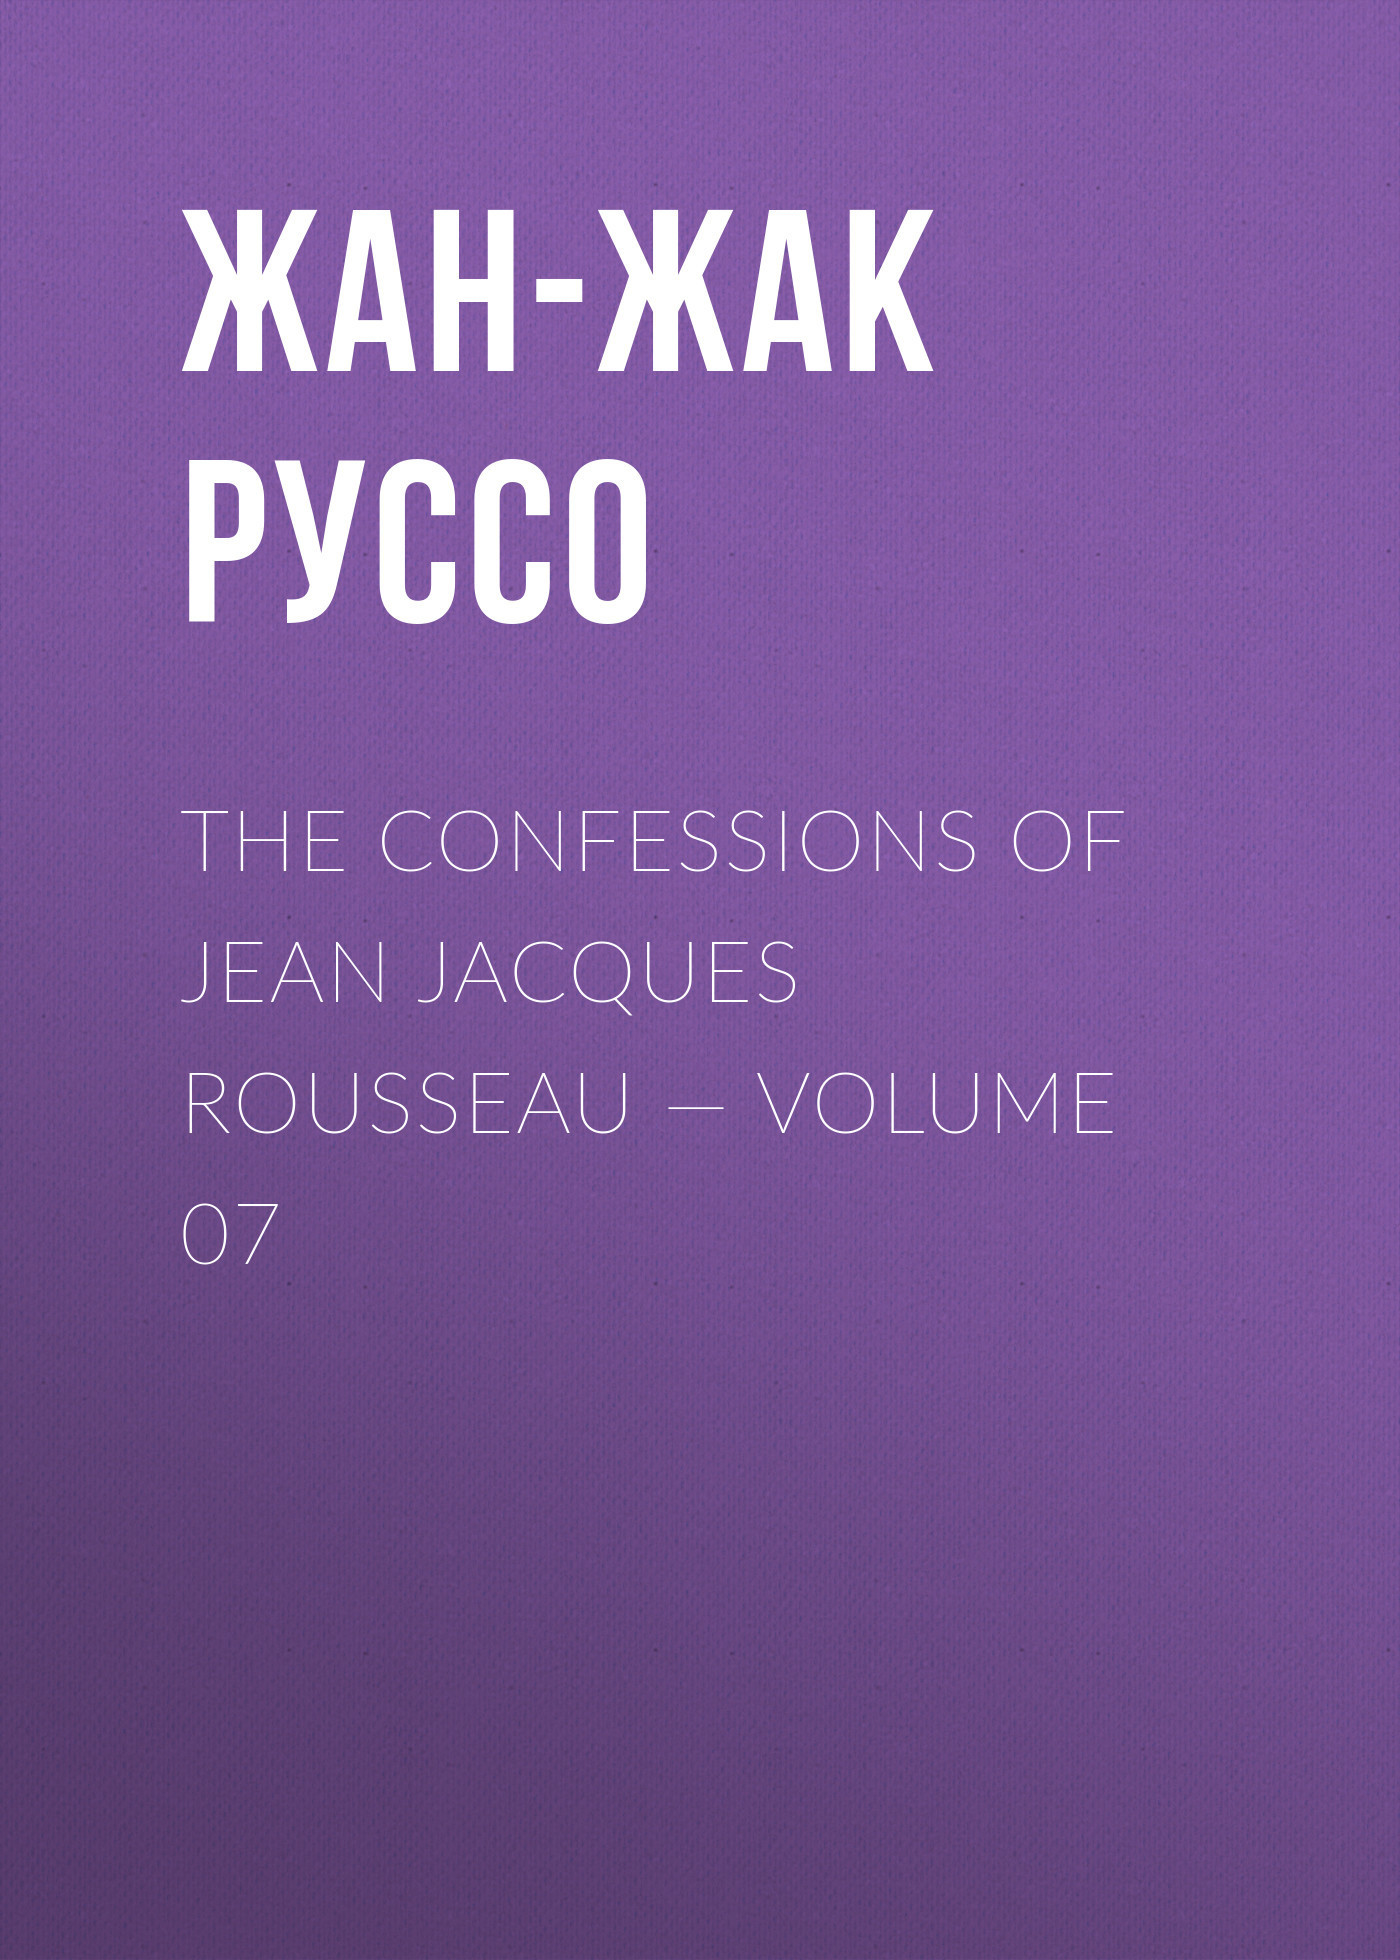 Жан-Жак Руссо The Confessions of Jean Jacques Rousseau — Volume 07 jean jacques rousseau memoires t 3